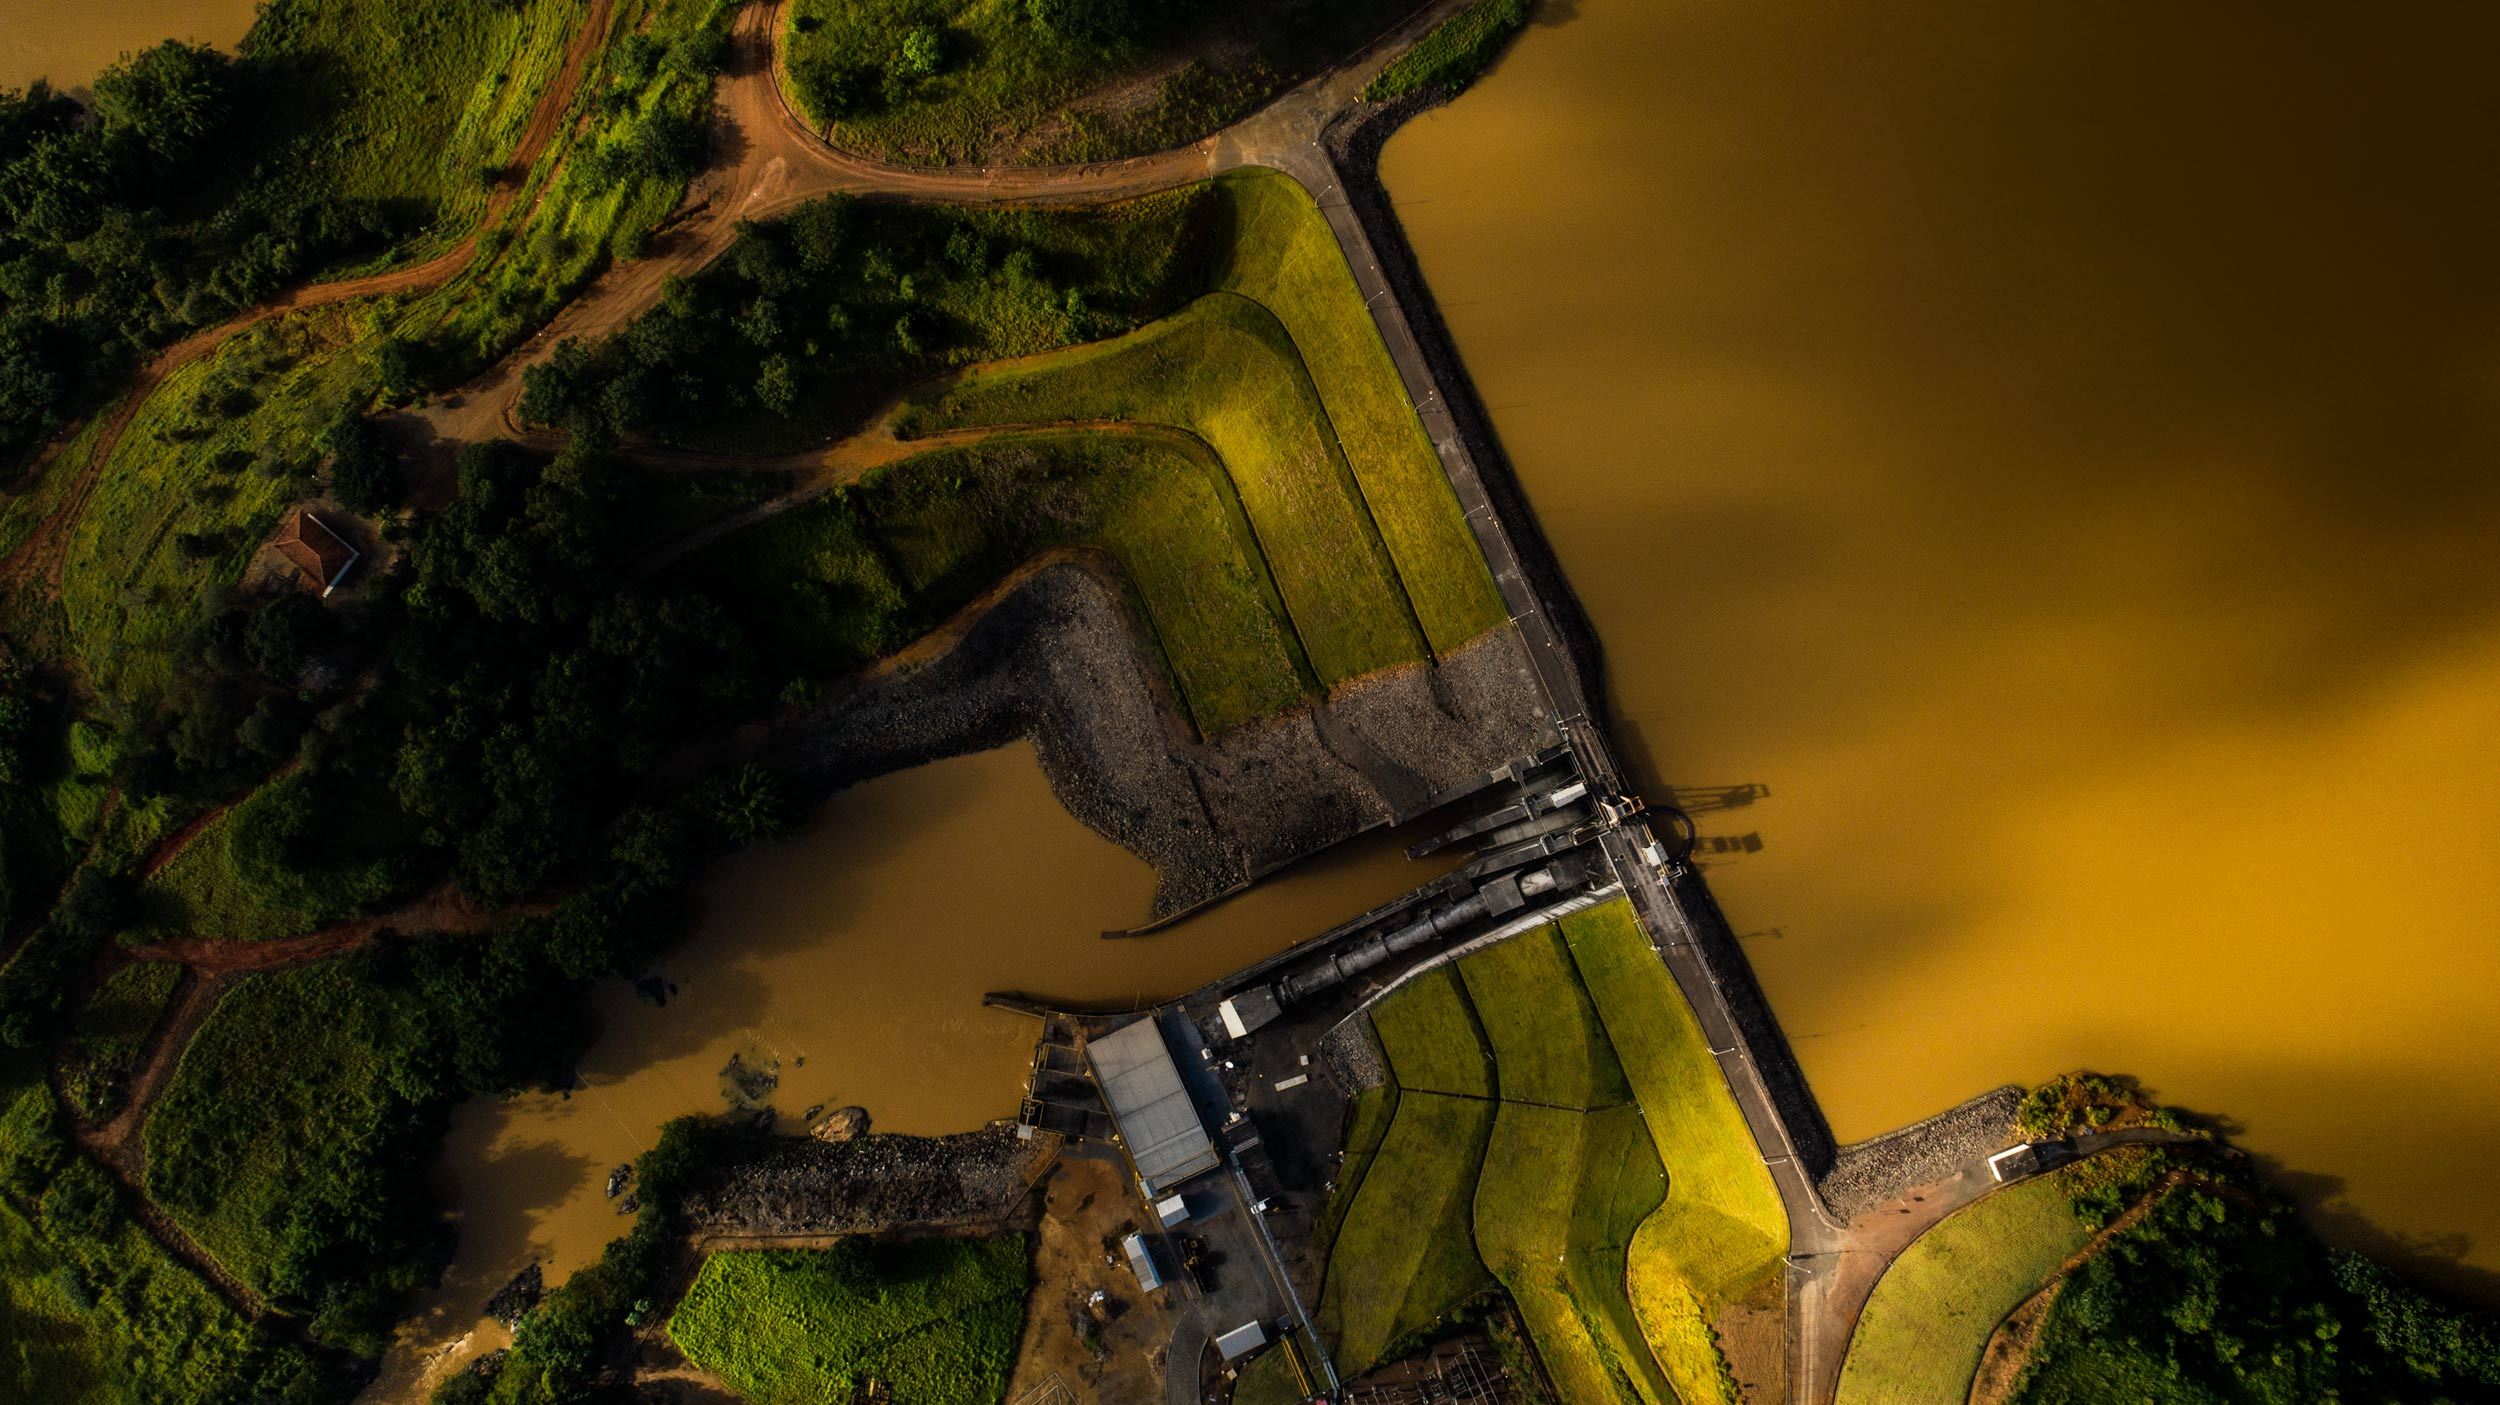 Aerial view of a hydroelectric dam | Scott Gable industrial photographer